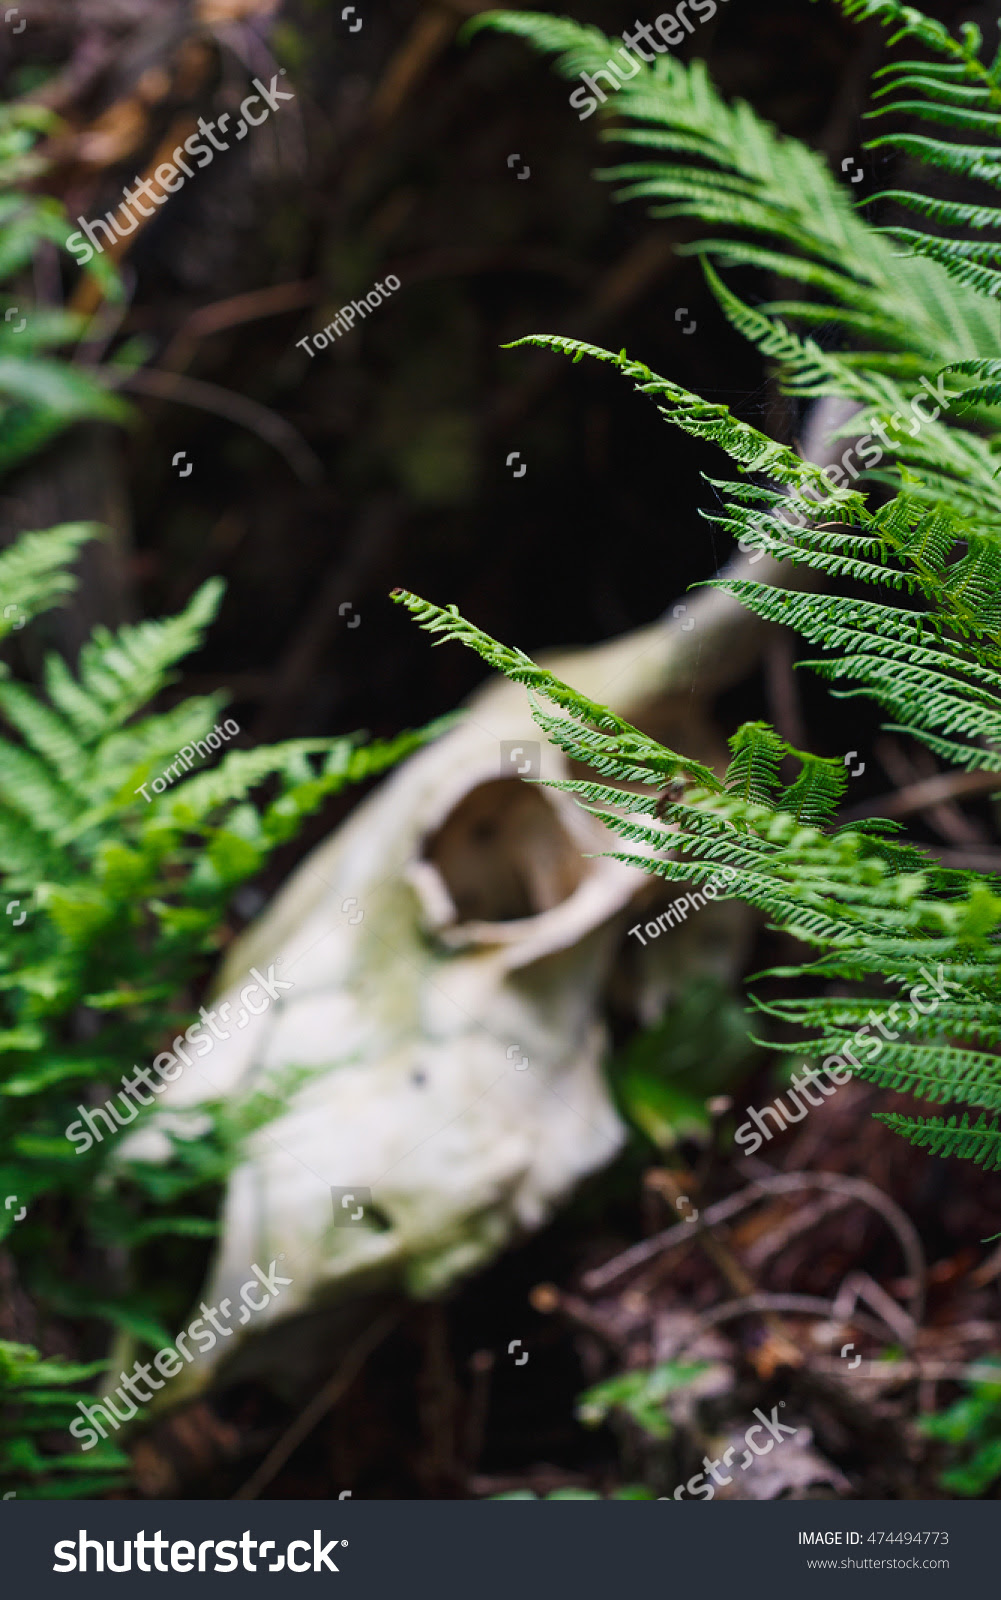 ancient, animal, autumn, autumnal, background, bone, bull, bush, close, closeup, color, cow, dead, death, deep, fade, fern, flora, foliage, forest, green, growth, grunge, halloween, horns, land, leaves, mist, natural, nature, old, outdoors, plant, rural, scary, skeleton, skull, tribal, vegetation, vintage, white, wild, wilderness, woods